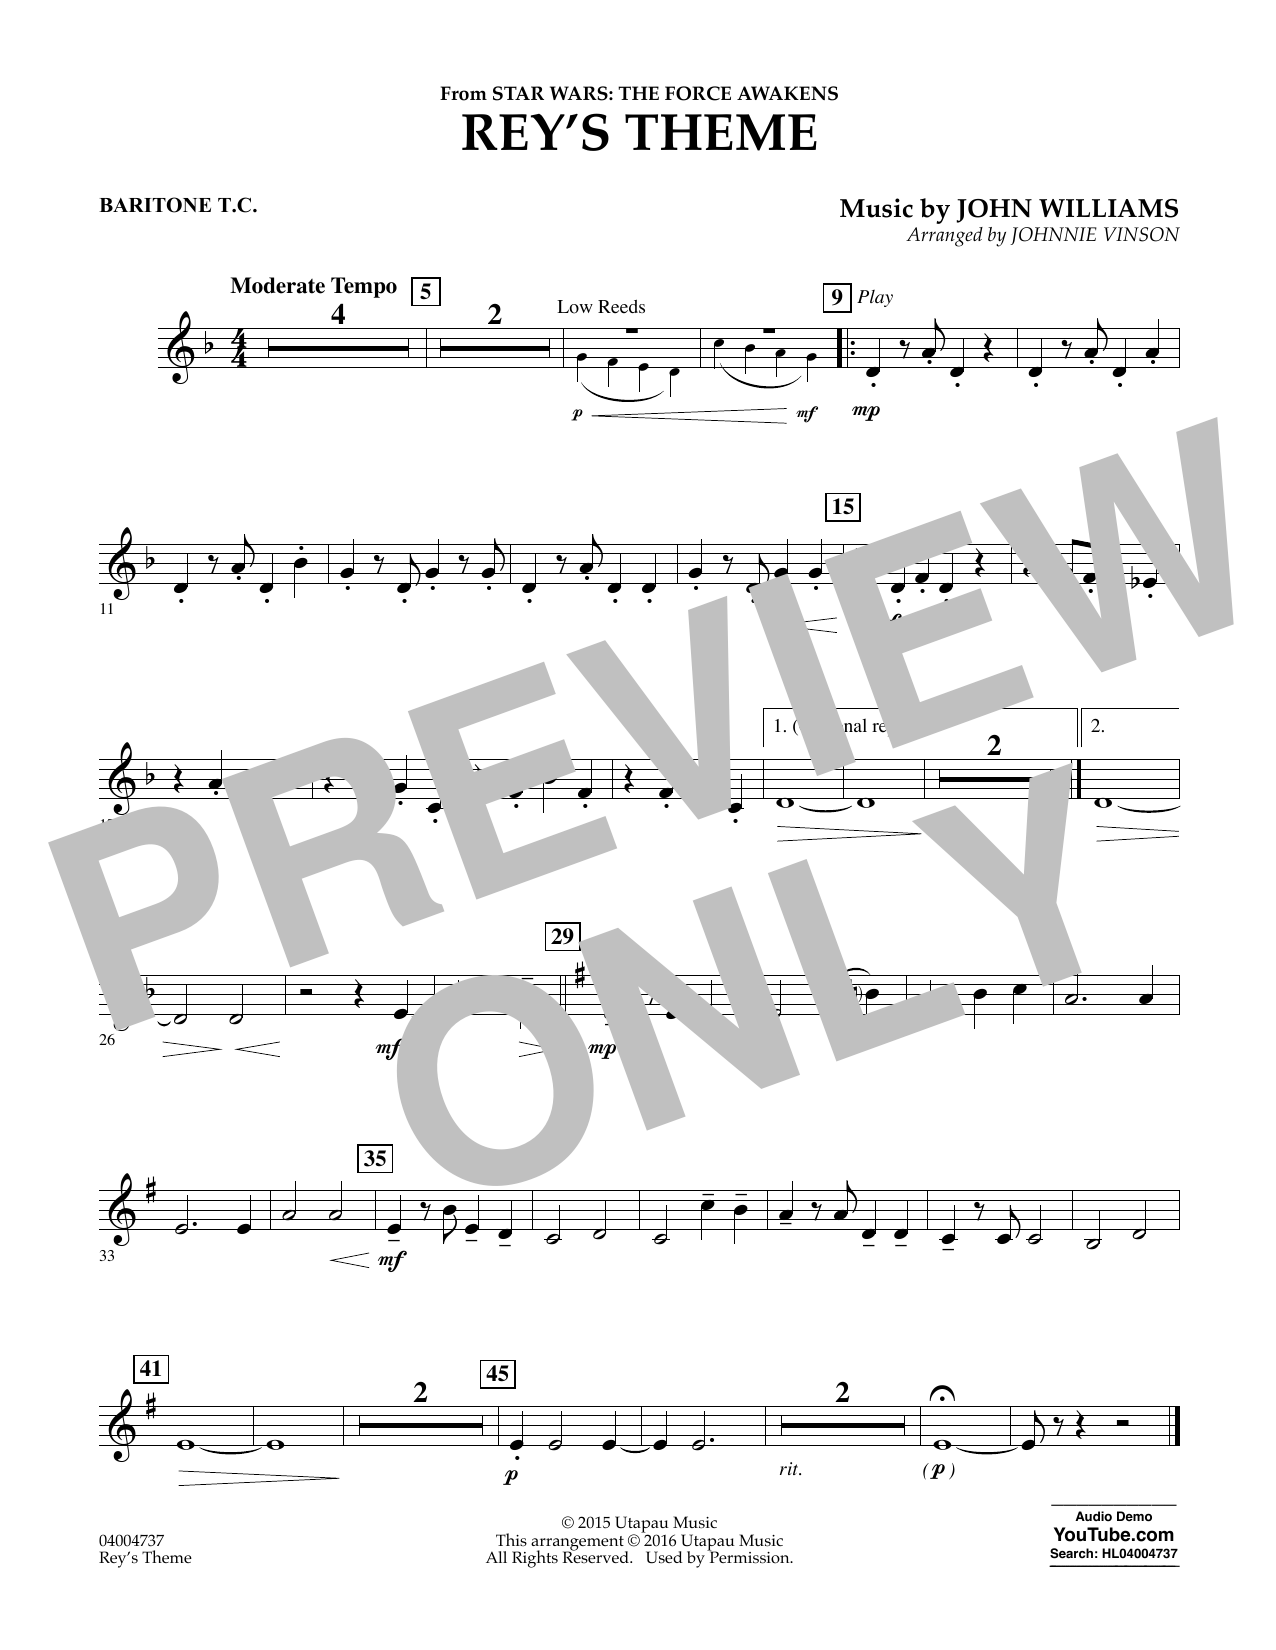 Rey's Theme (from Star Wars: The Force Awakens) - Baritone T.C. (Concert Band)